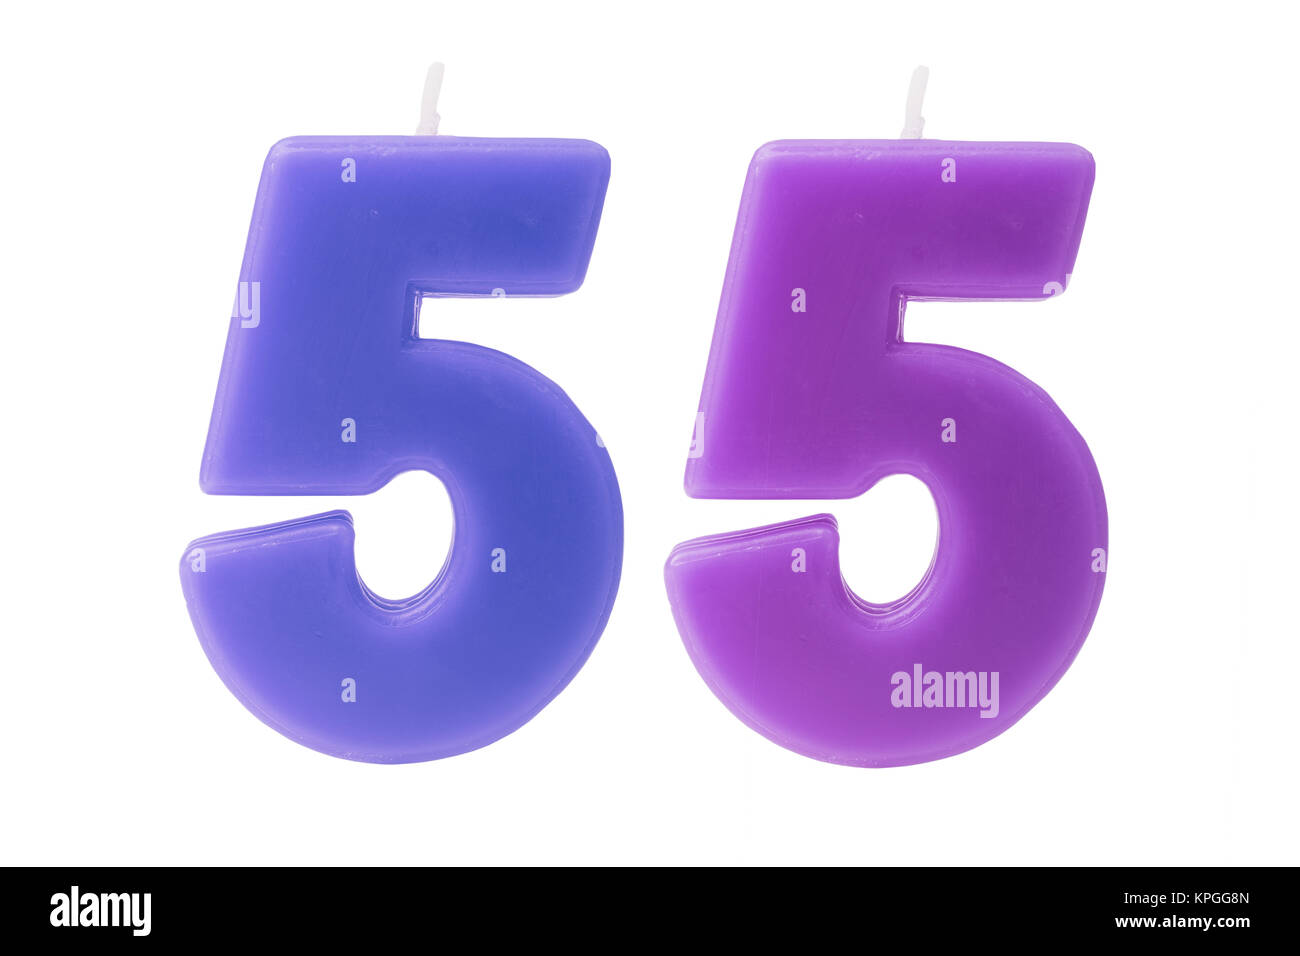 55th birthday candles isolated - Stock Image